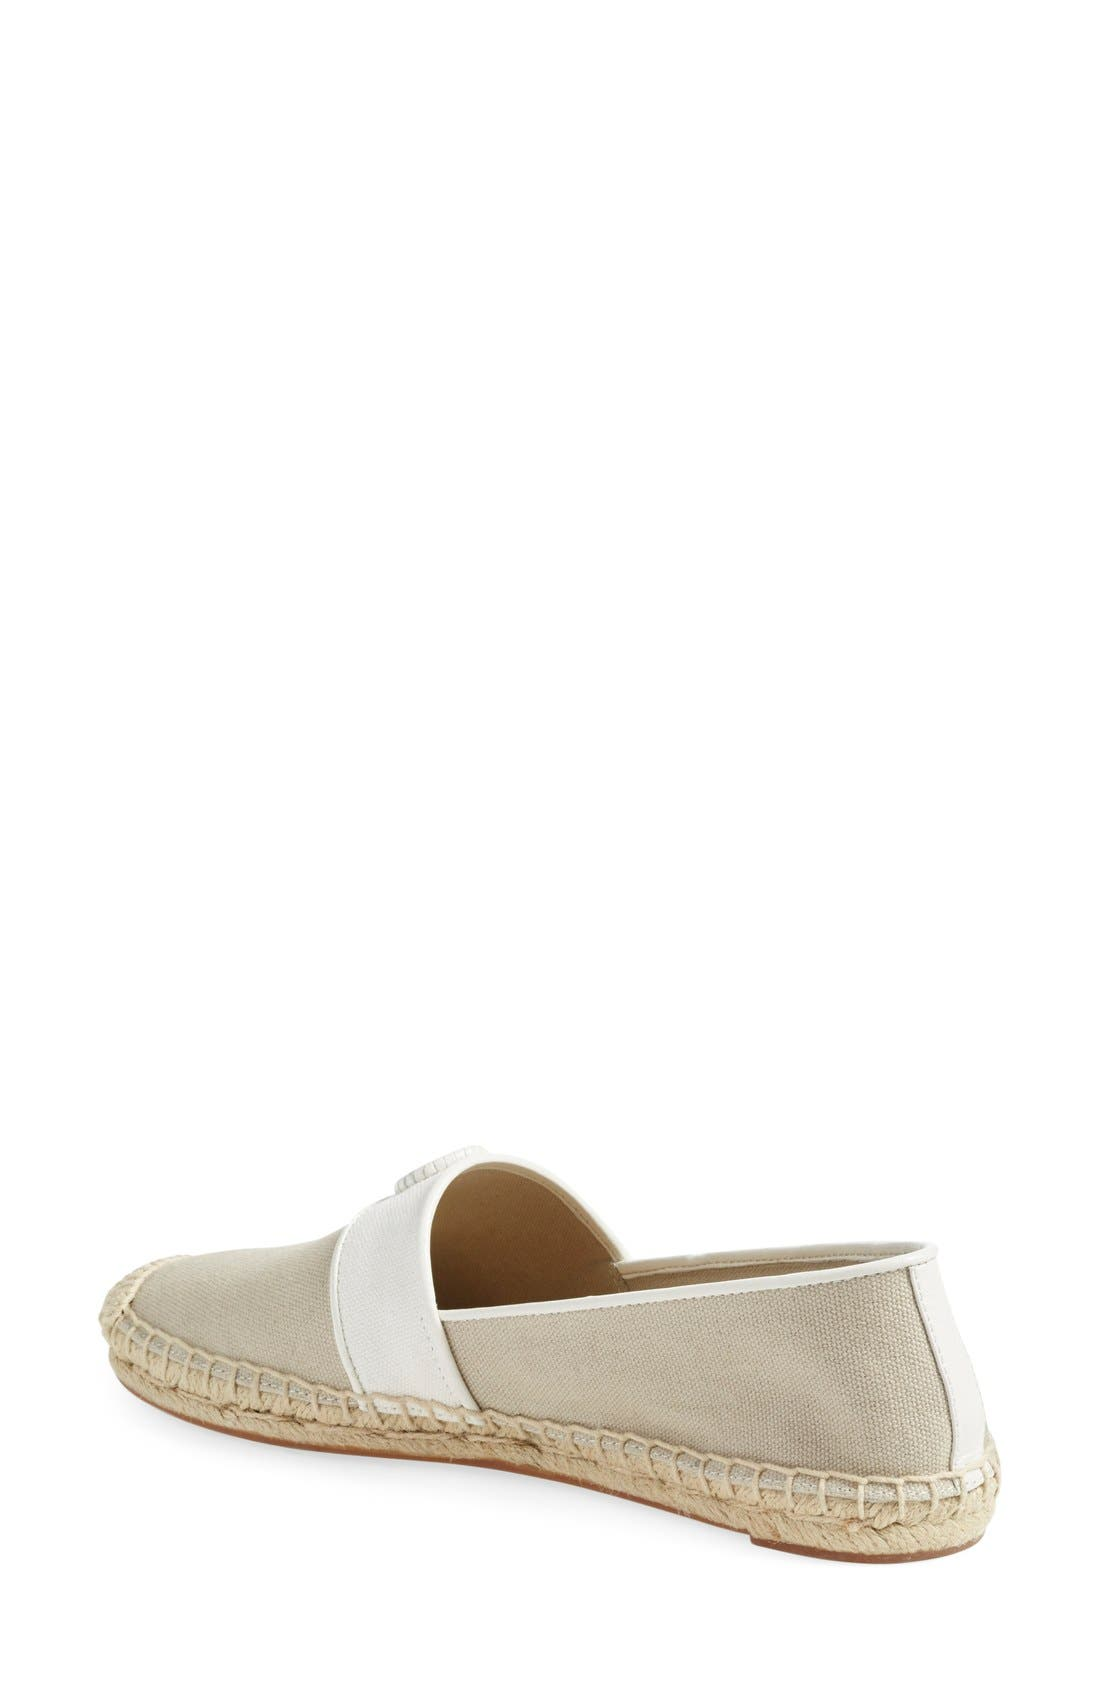 Alternate Image 2  - Tory Burch 'Lacey' Espadrille Flat (Women) (Nordstrom Exclusive)